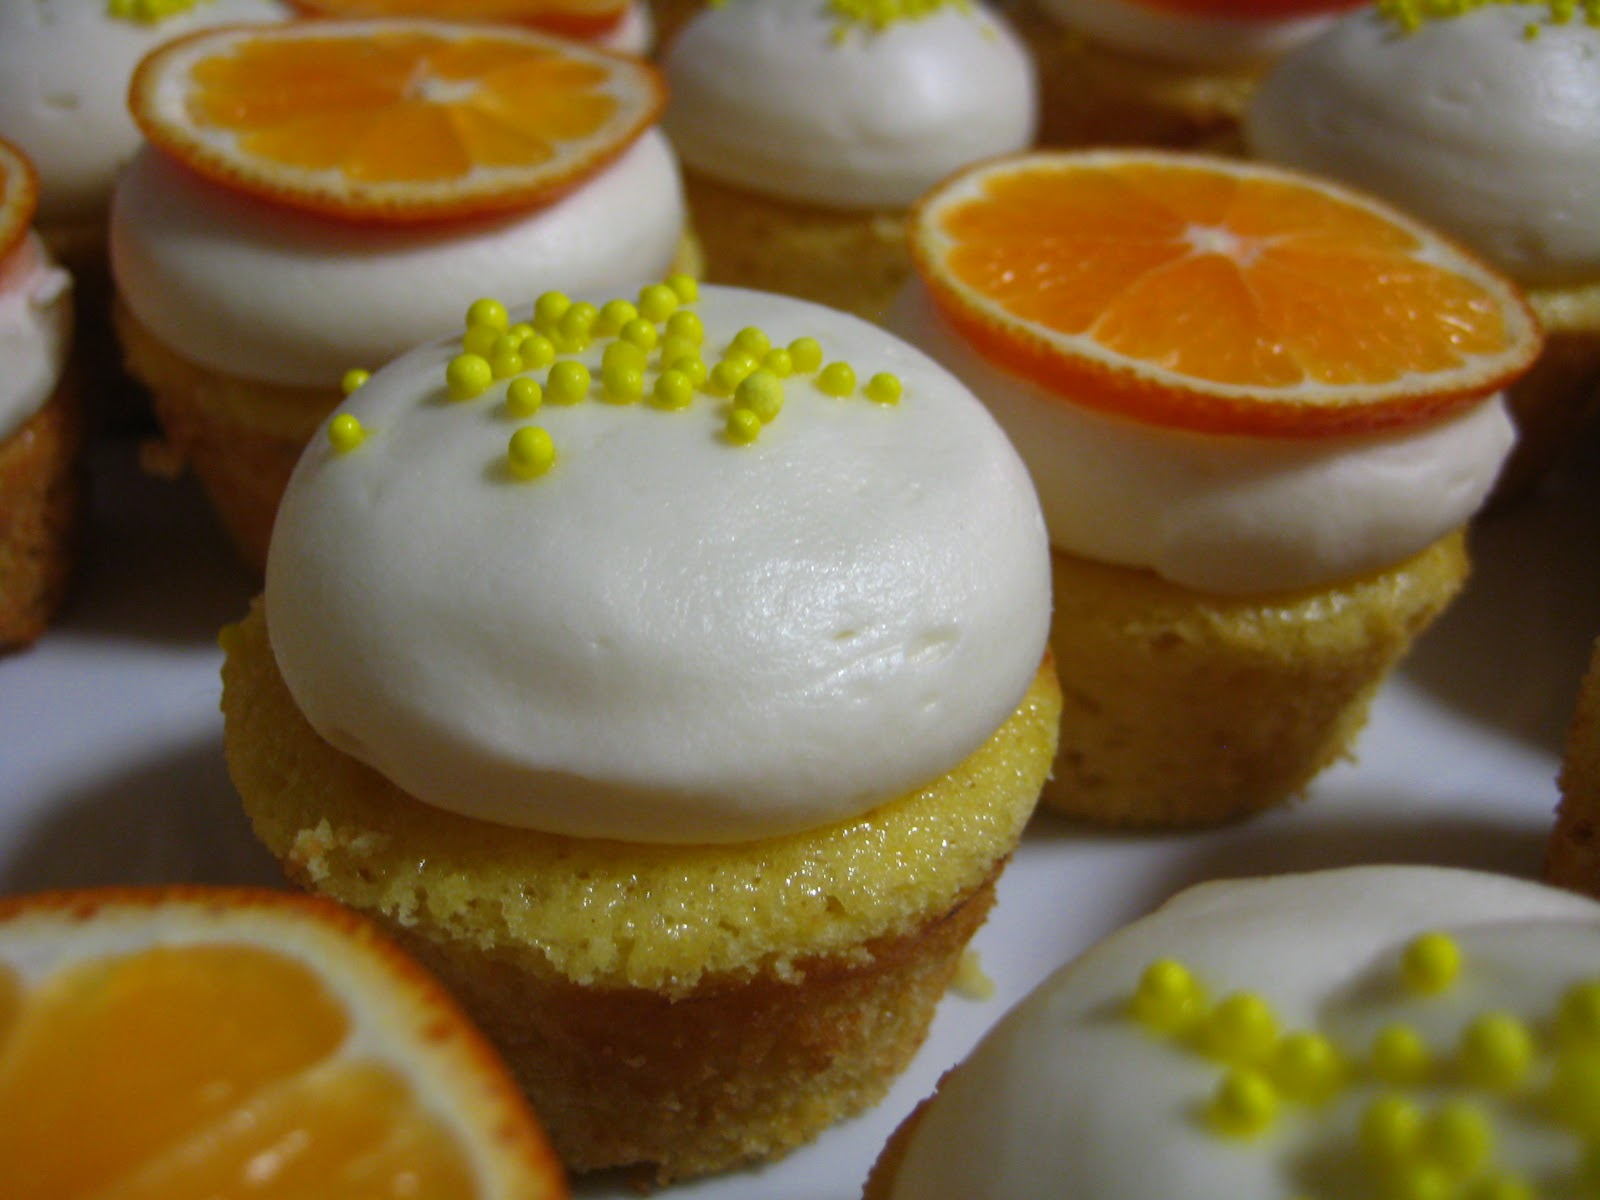 ... : Orange Chiffon Cupcakes with White Chocolate Cream Cheese Frosting